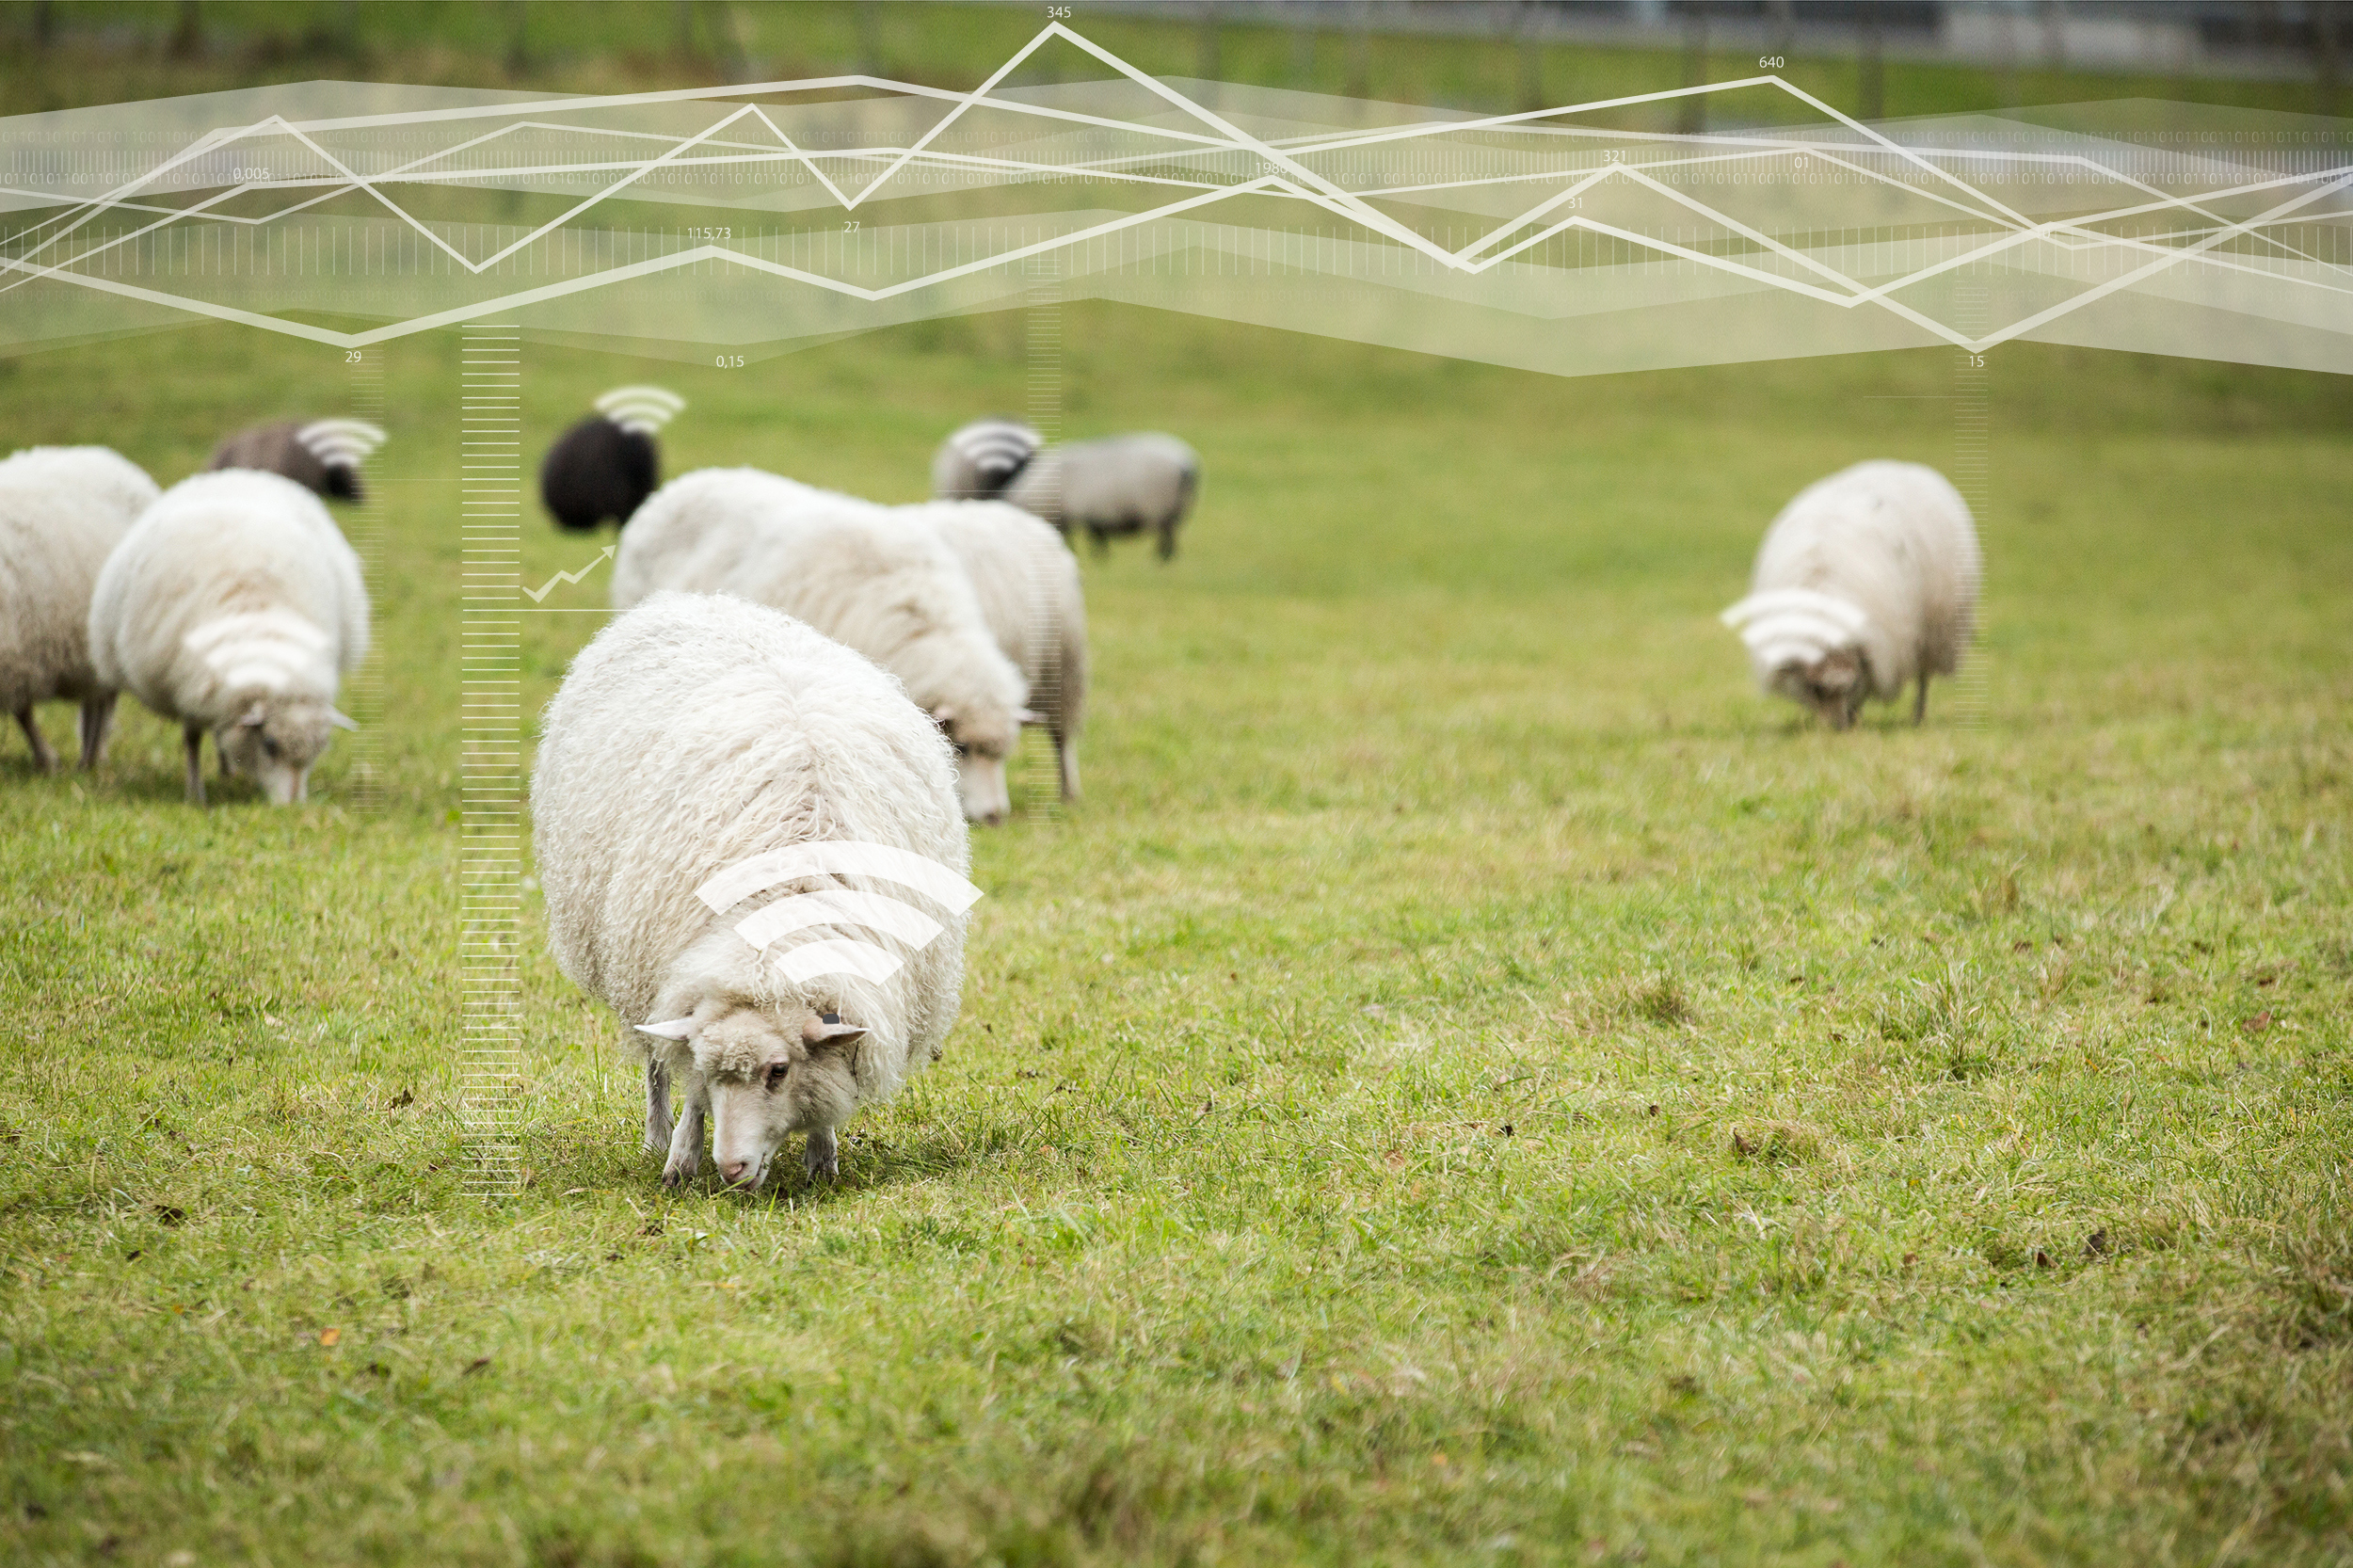 Analytics - Capture big data sets on your flock's grazing, drinking and behavioral activities. This enhances decision making for future breeding, grazing and managerial planning.